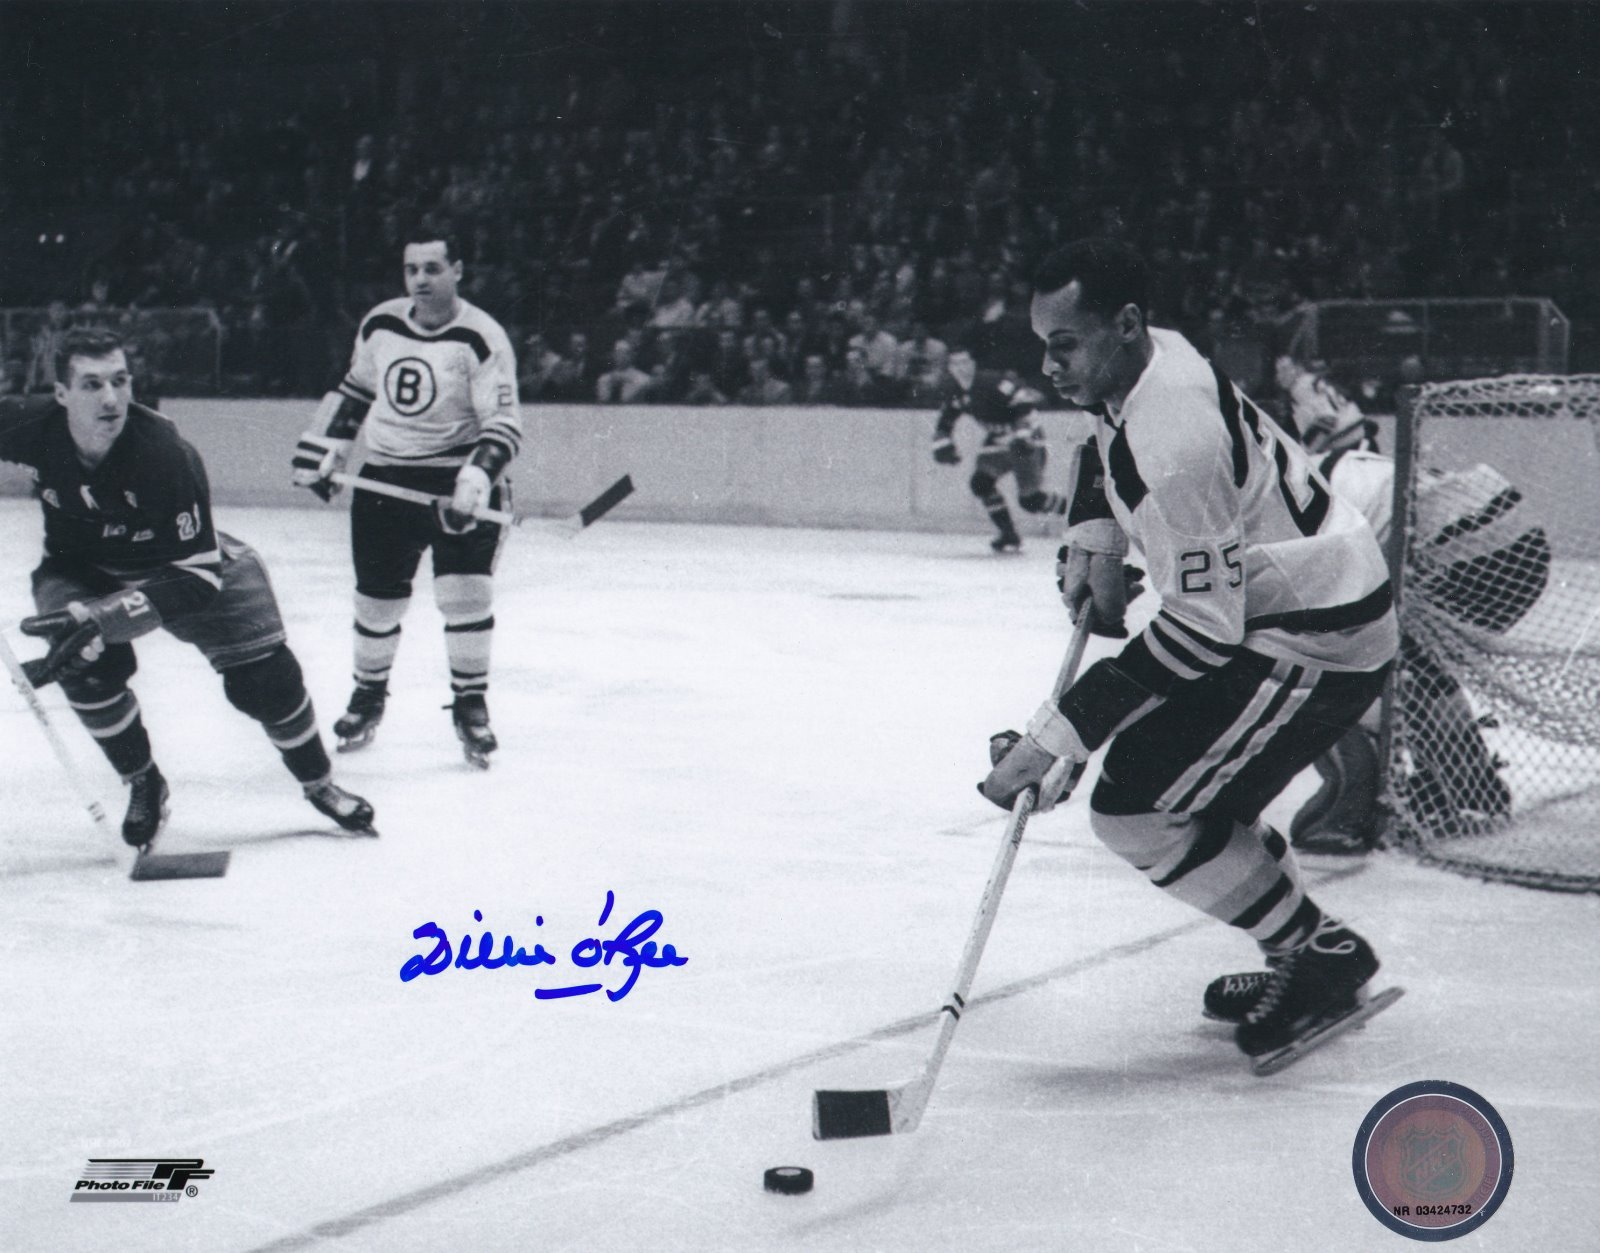 Willie O'ree Autograph 8x10 B&W photo Boston Bruins